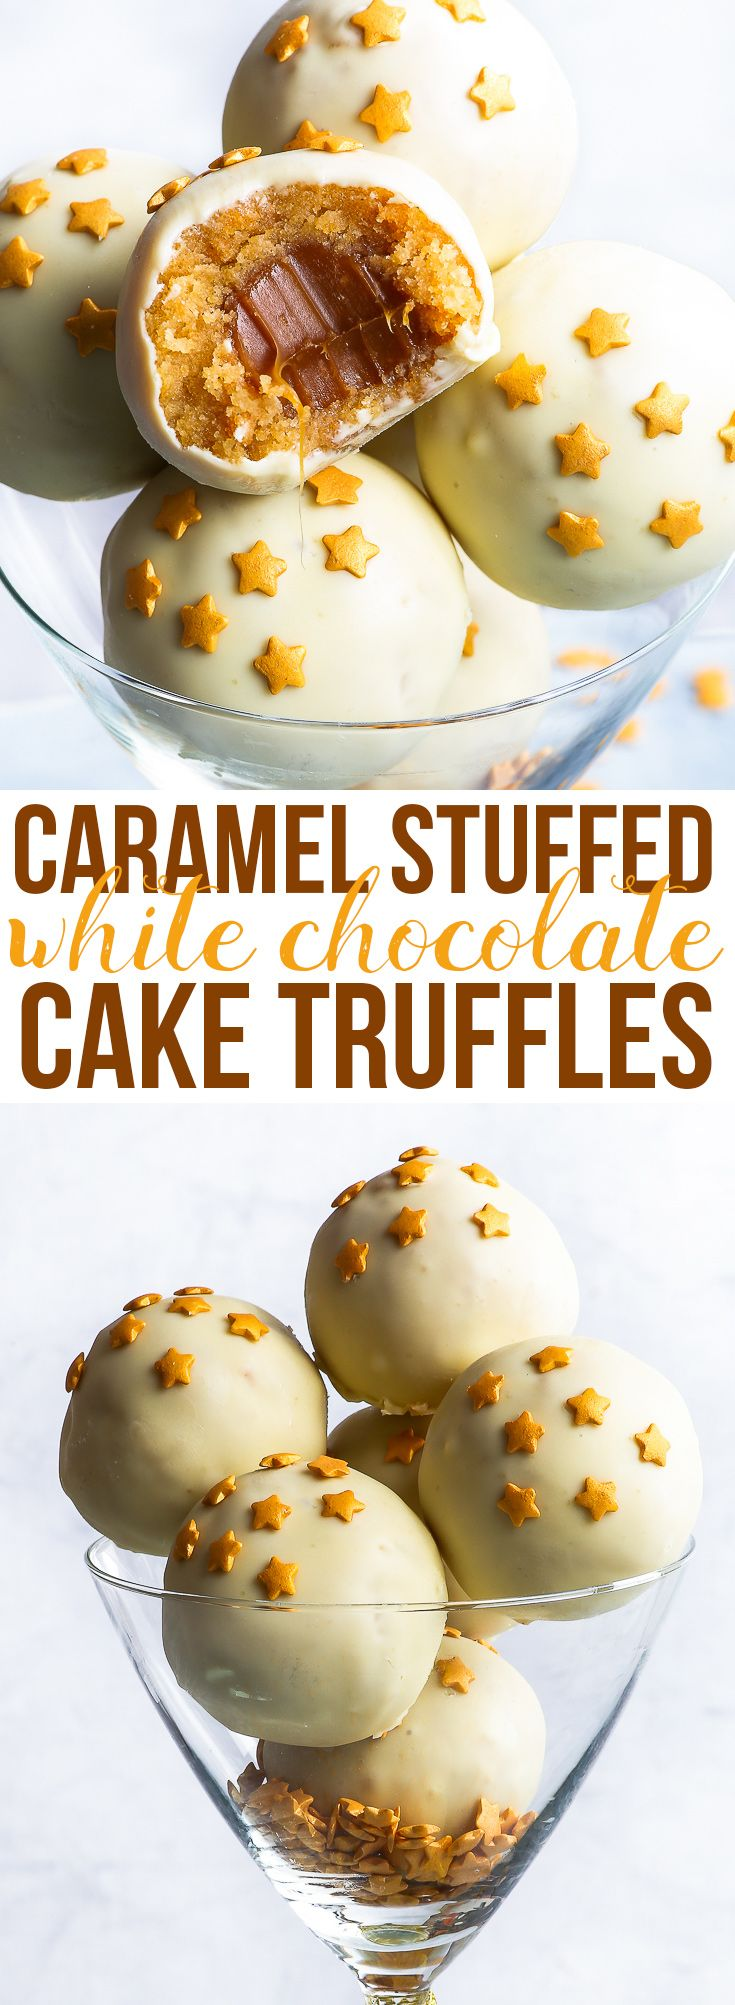 Caramel Stuffed White Chocolate Cake Truffles {gluten, nut & soy free} - These caramel stuffed white chocolate cake truffles are the perfect gluten free party dessert (even if it's a party of one). These gluten free cake truffles contain a caramel centre, a cake pop like mixture surrounding it, a white chocolate shell and a sprinkling of gold star sprinkles. Ridiculously pretty, dangerously delicious and super easy to make, there's nothing not to love about these cake truffles!